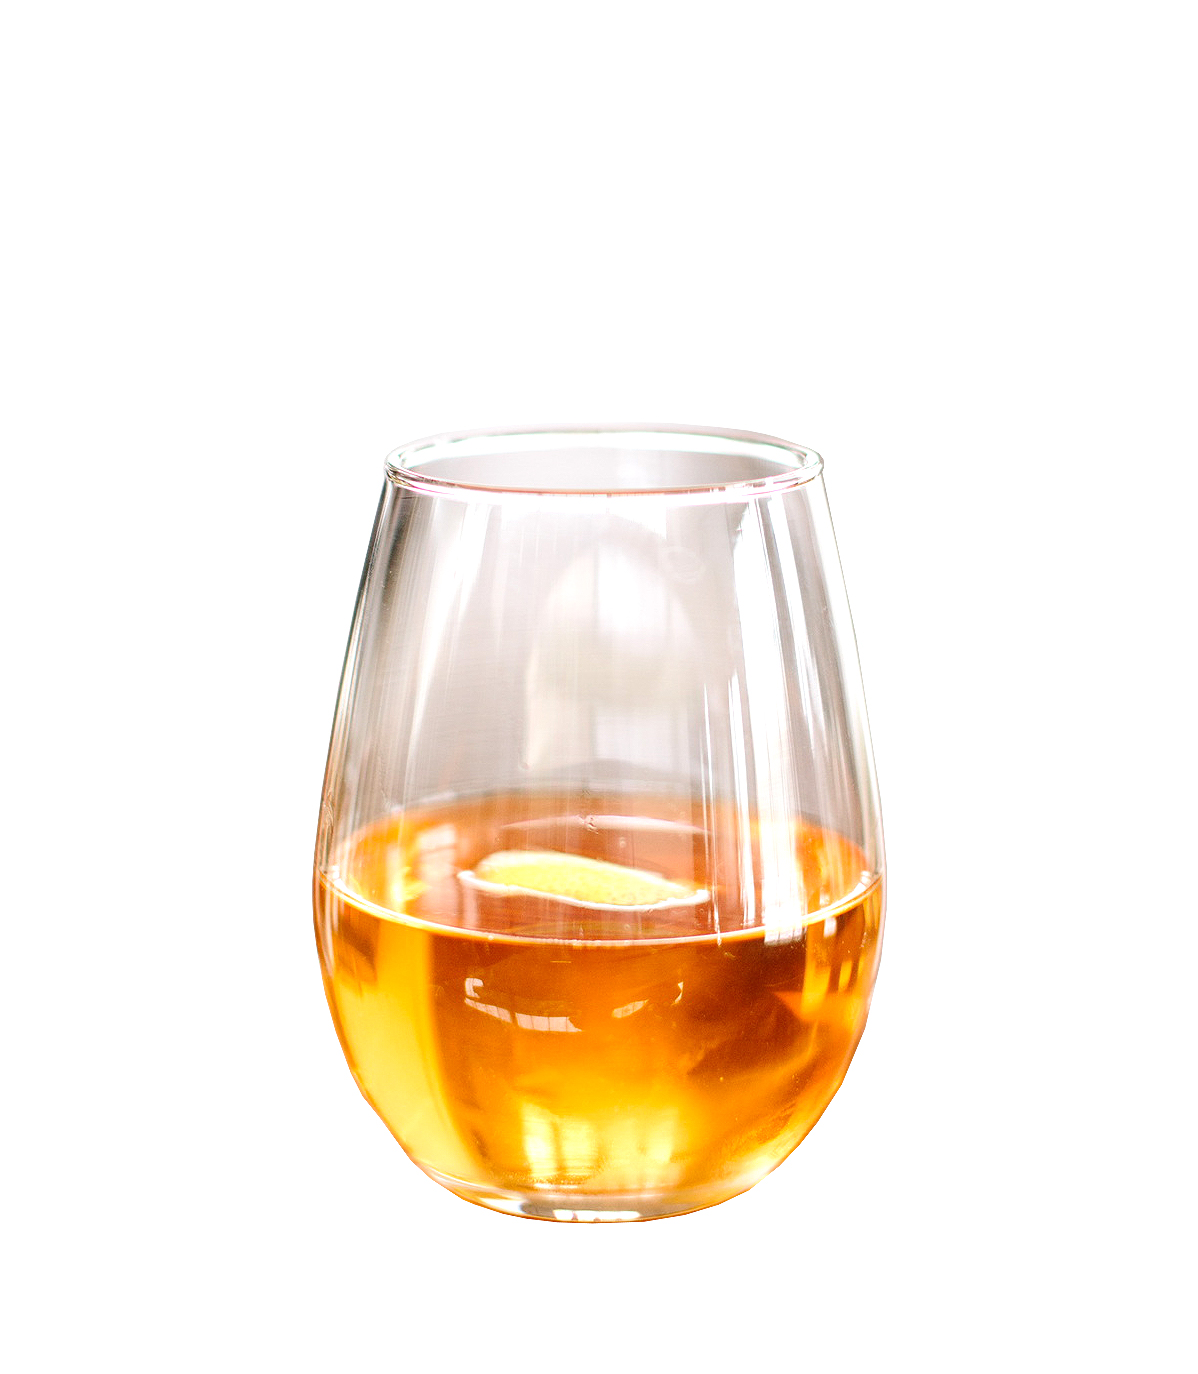 HOOVER  25ml Norseman Orange Liqueur 25ml Sweet Vermouth 50ml Norseman Rum  Stir on ice, decant into a stemless wine glass and garnish with an orange coin.